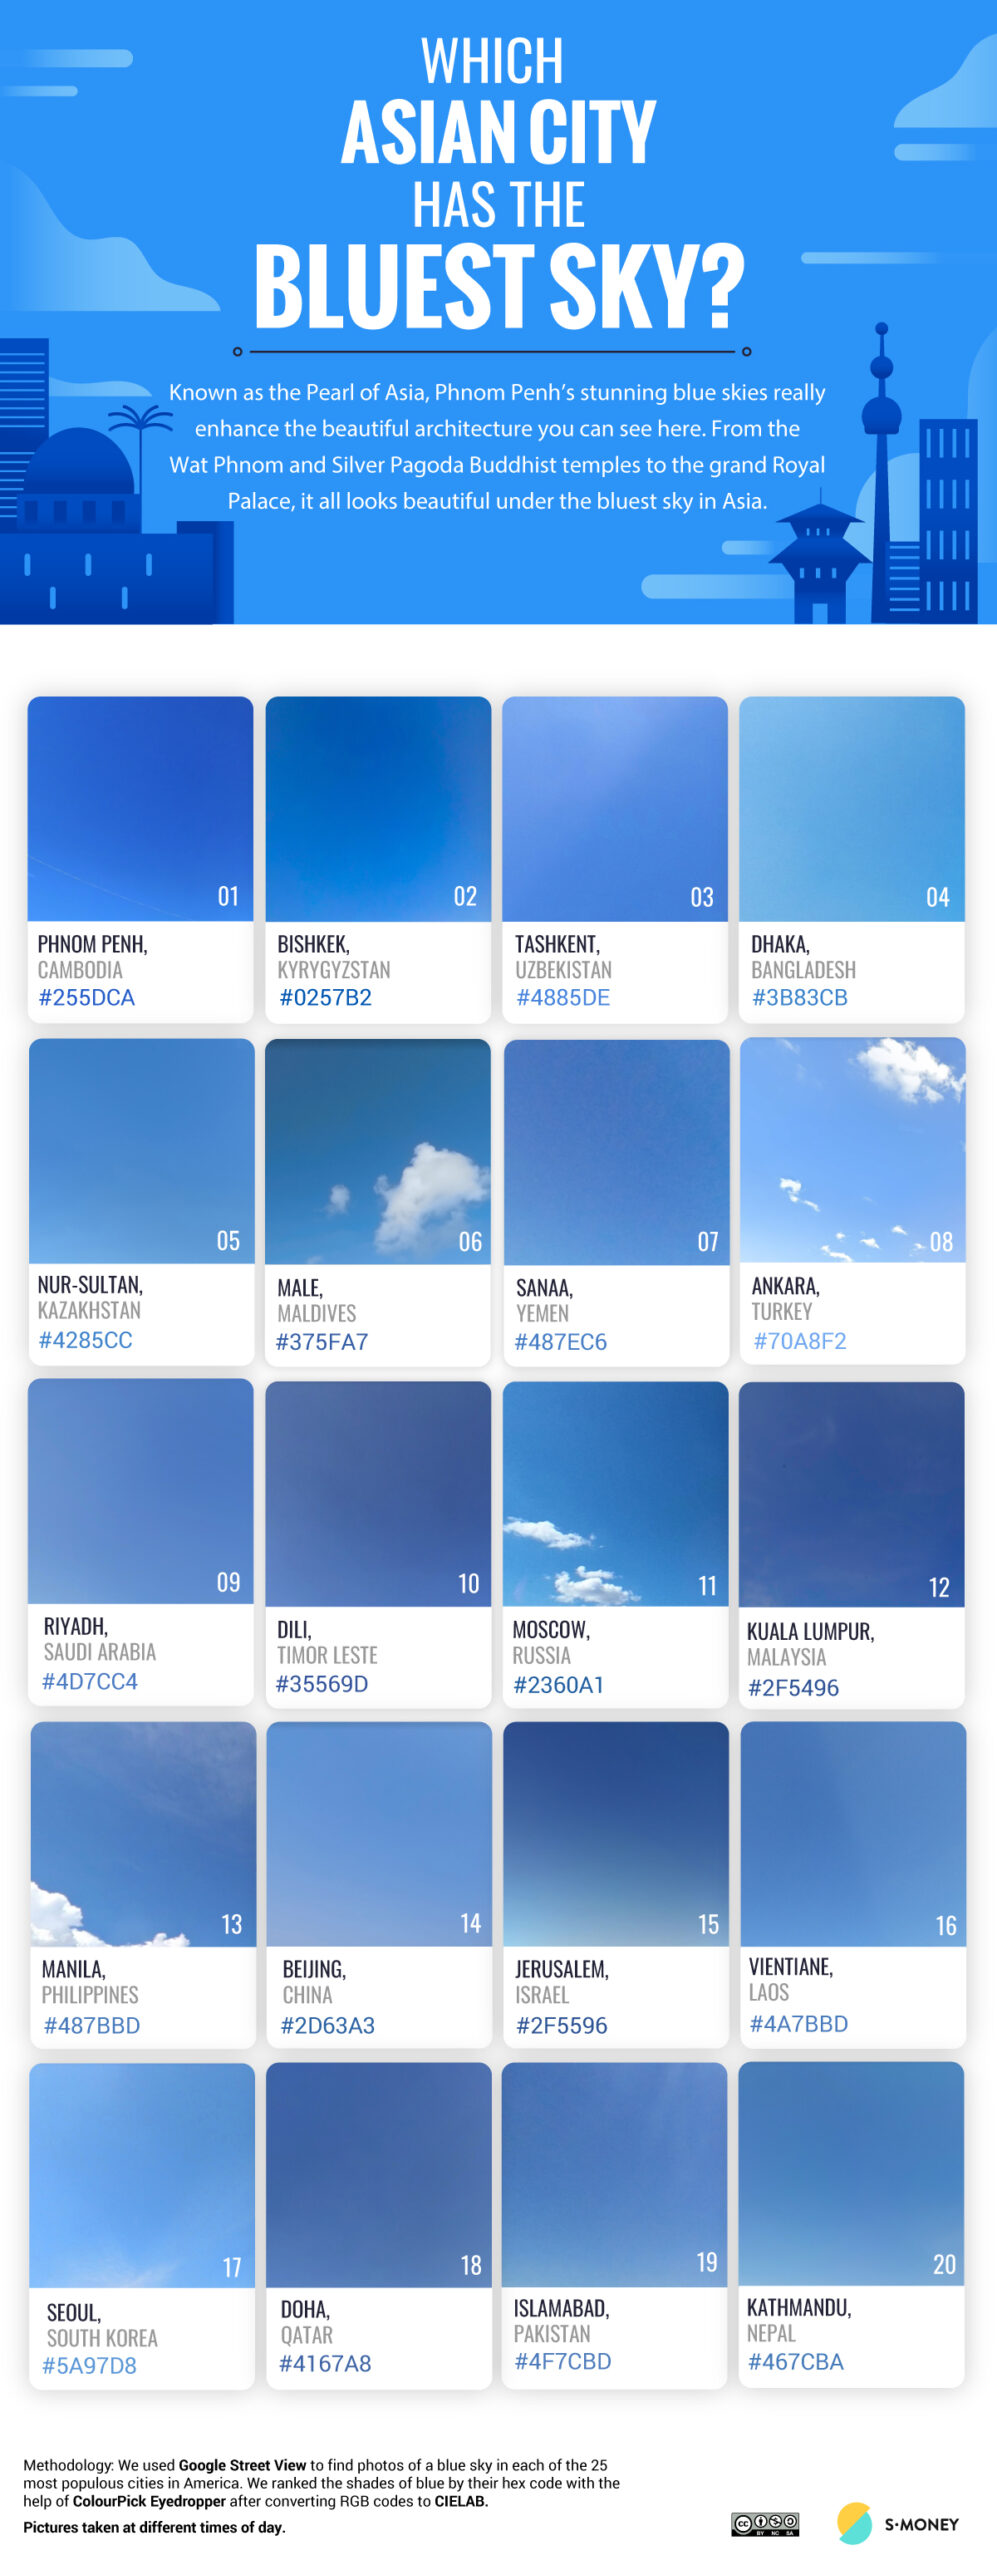 Which city has the bluest sky in Asia